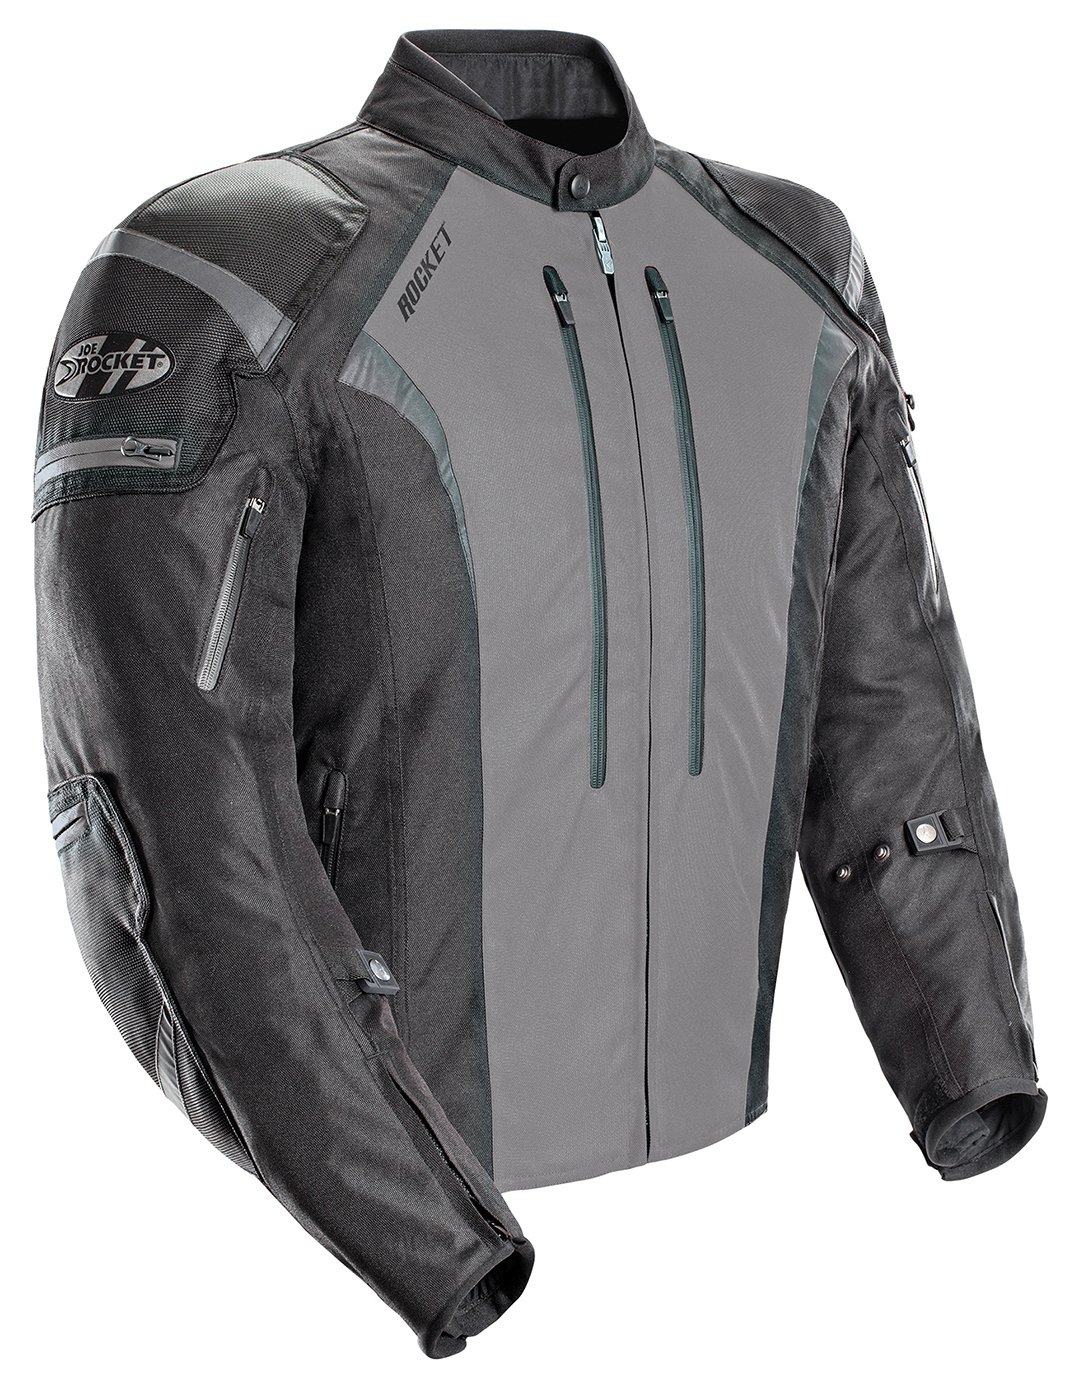 Joe Rocket Atomic Men's 5.0 Textile Motorcycle Jacket (Grey, XXX-Large)